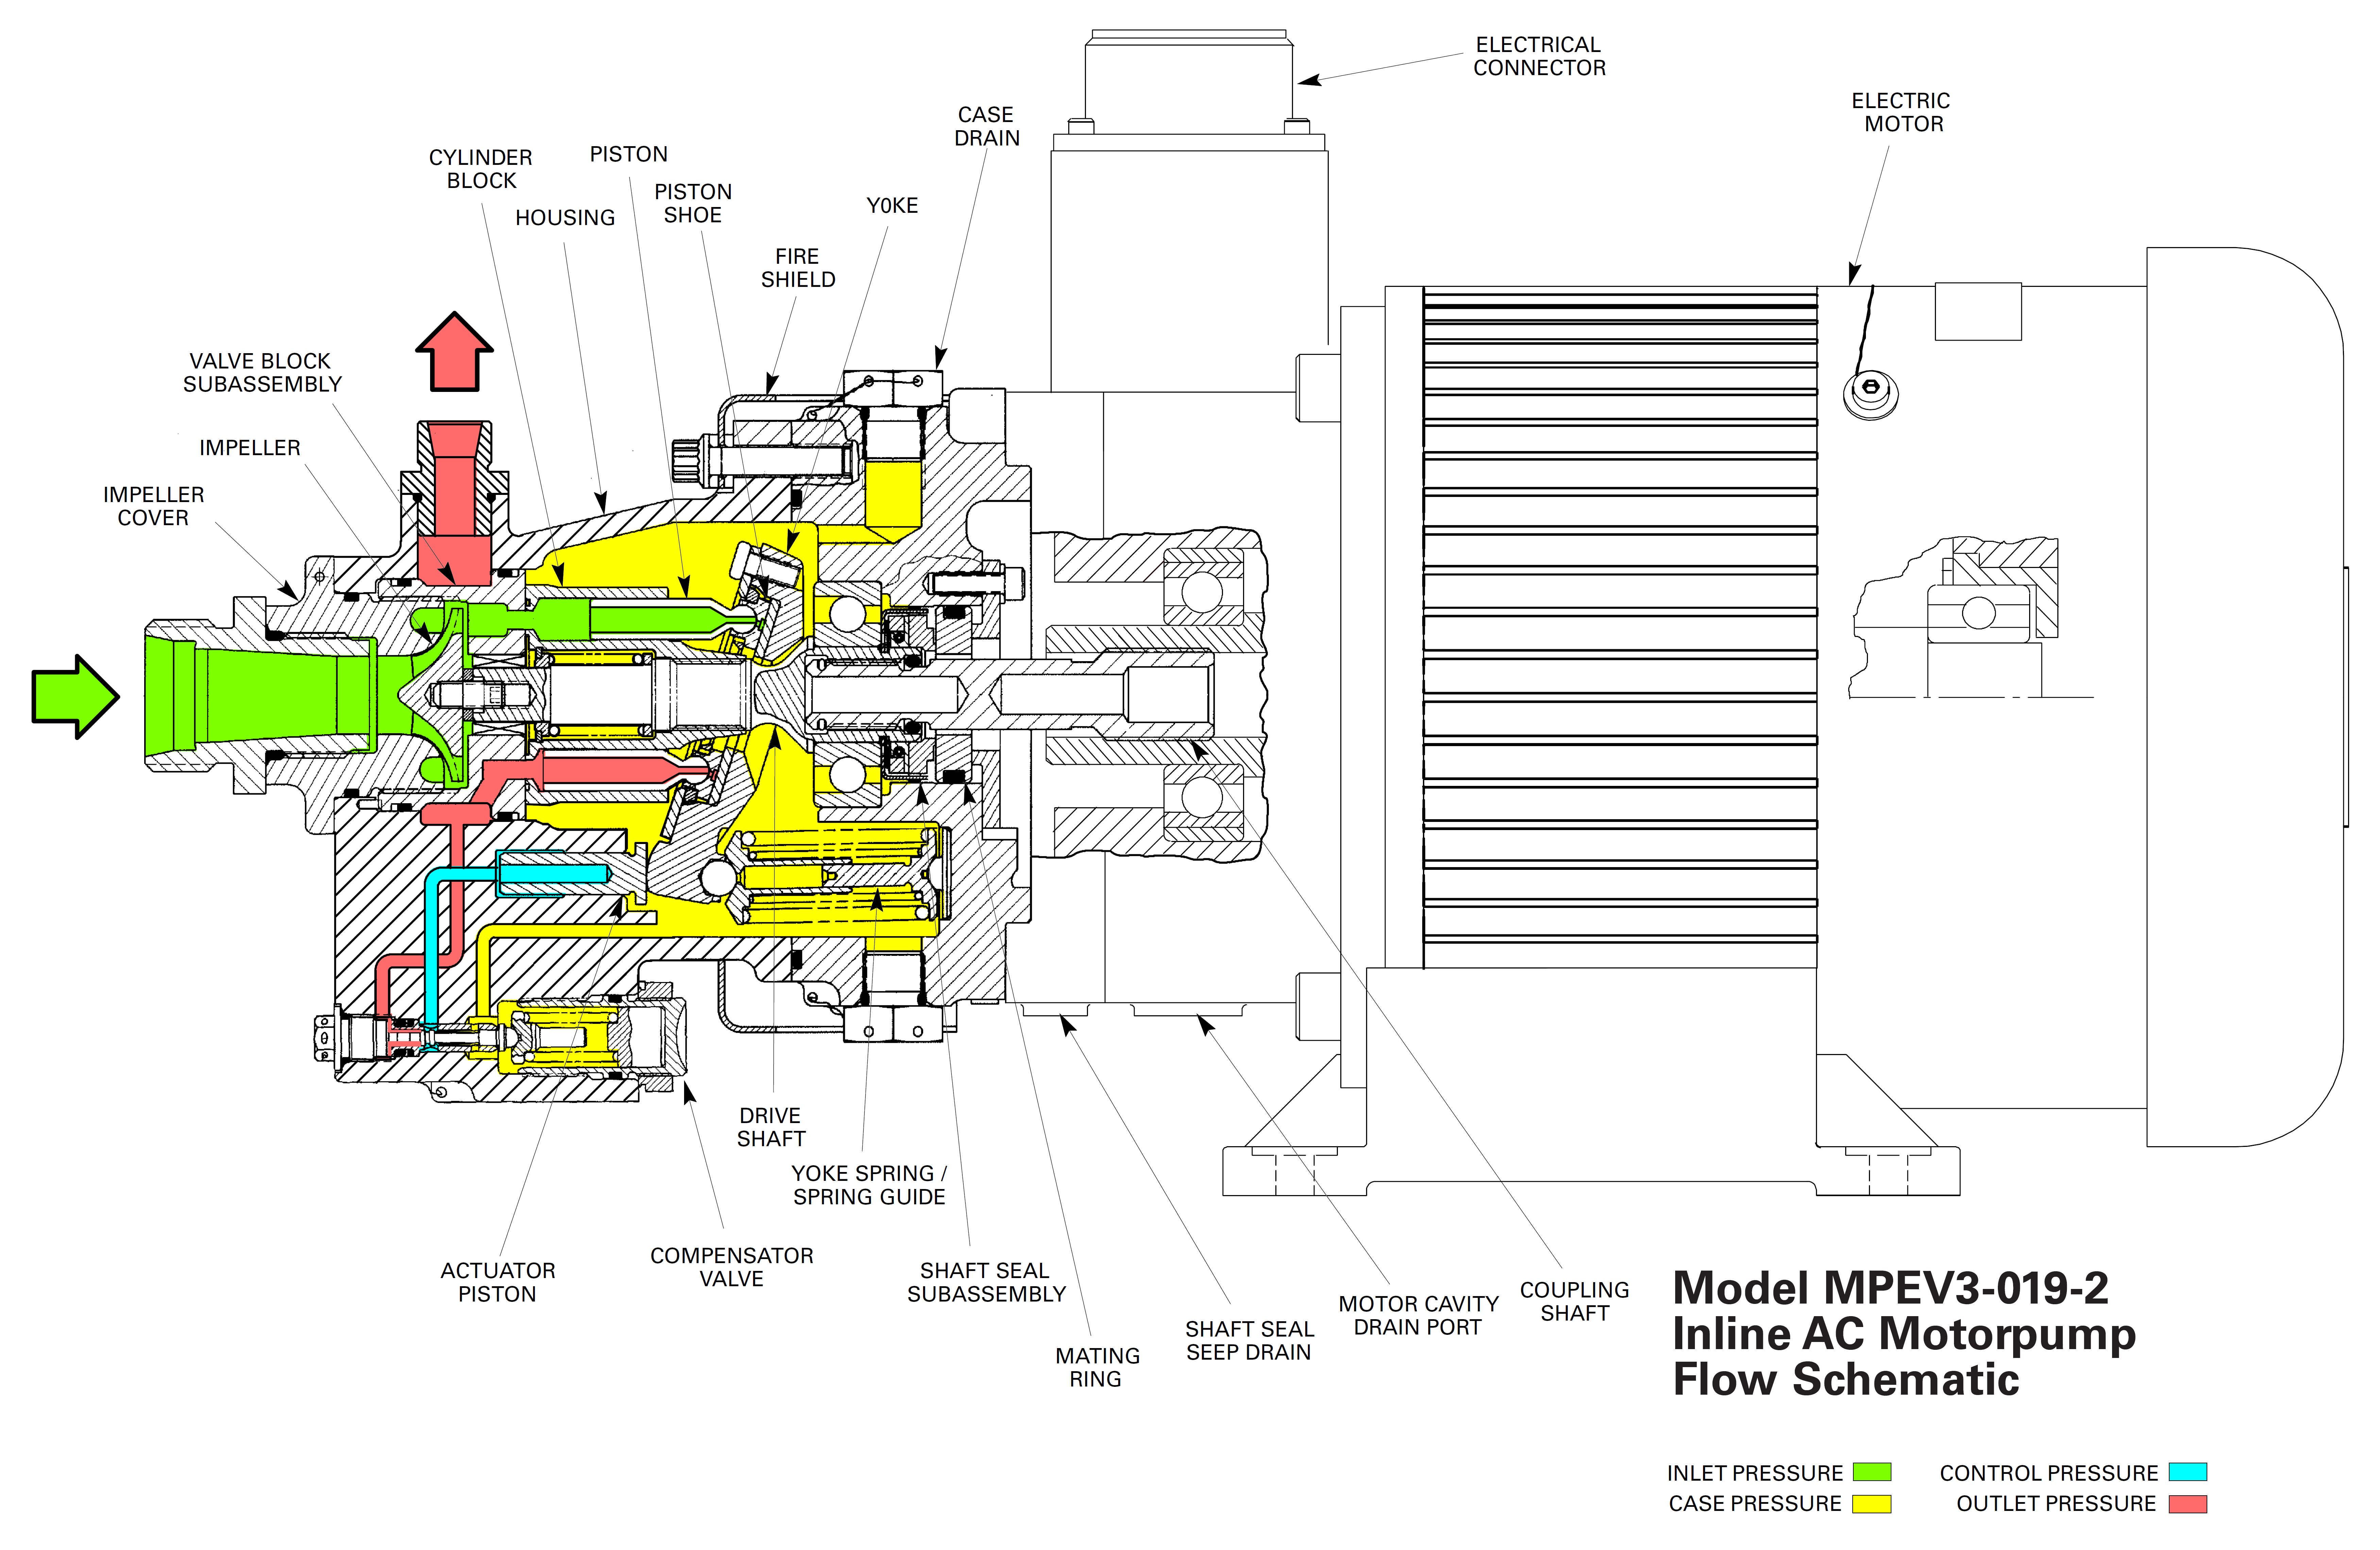 How Does An Electric Motor Work >> How Does A Pressure Compensated Electric Motor Driven Axial